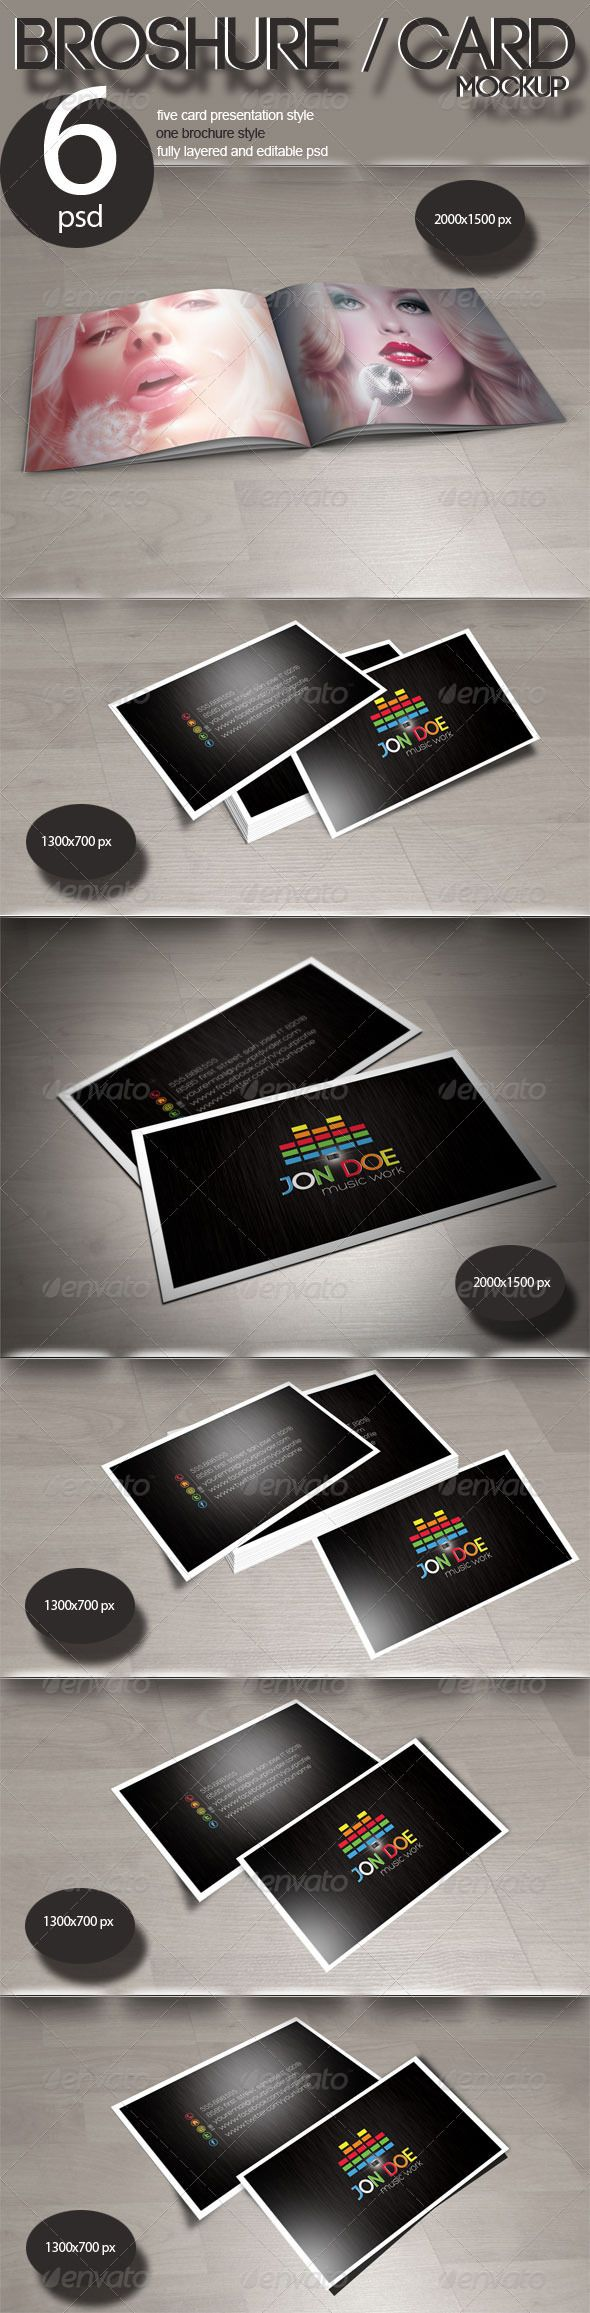 One brochure five business card mockup pinterest mockup one brochure five business card mockup photoshop psd brochure business available here reheart Choice Image